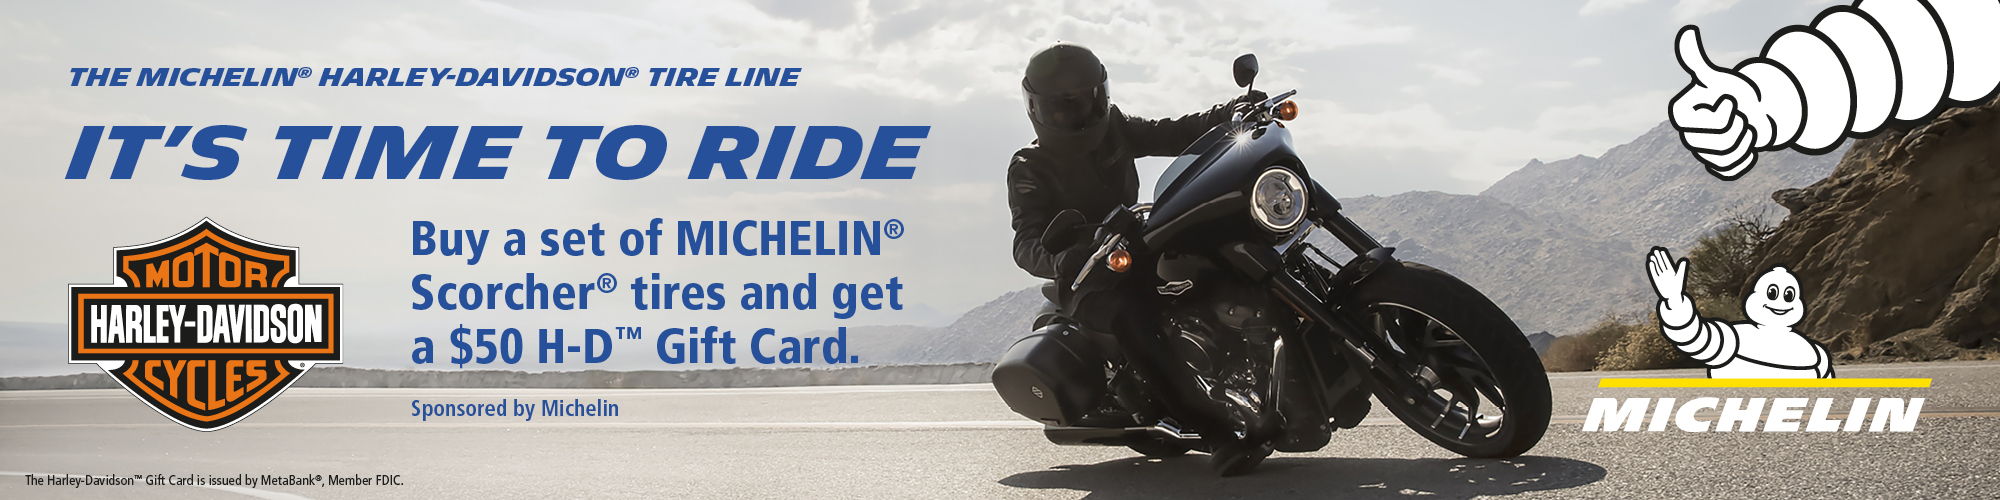 Harley-Davidson 2019 SUMMER MICHELIN® TIRE REBATE PROMOTION at Palm Springs Harley-Davidson